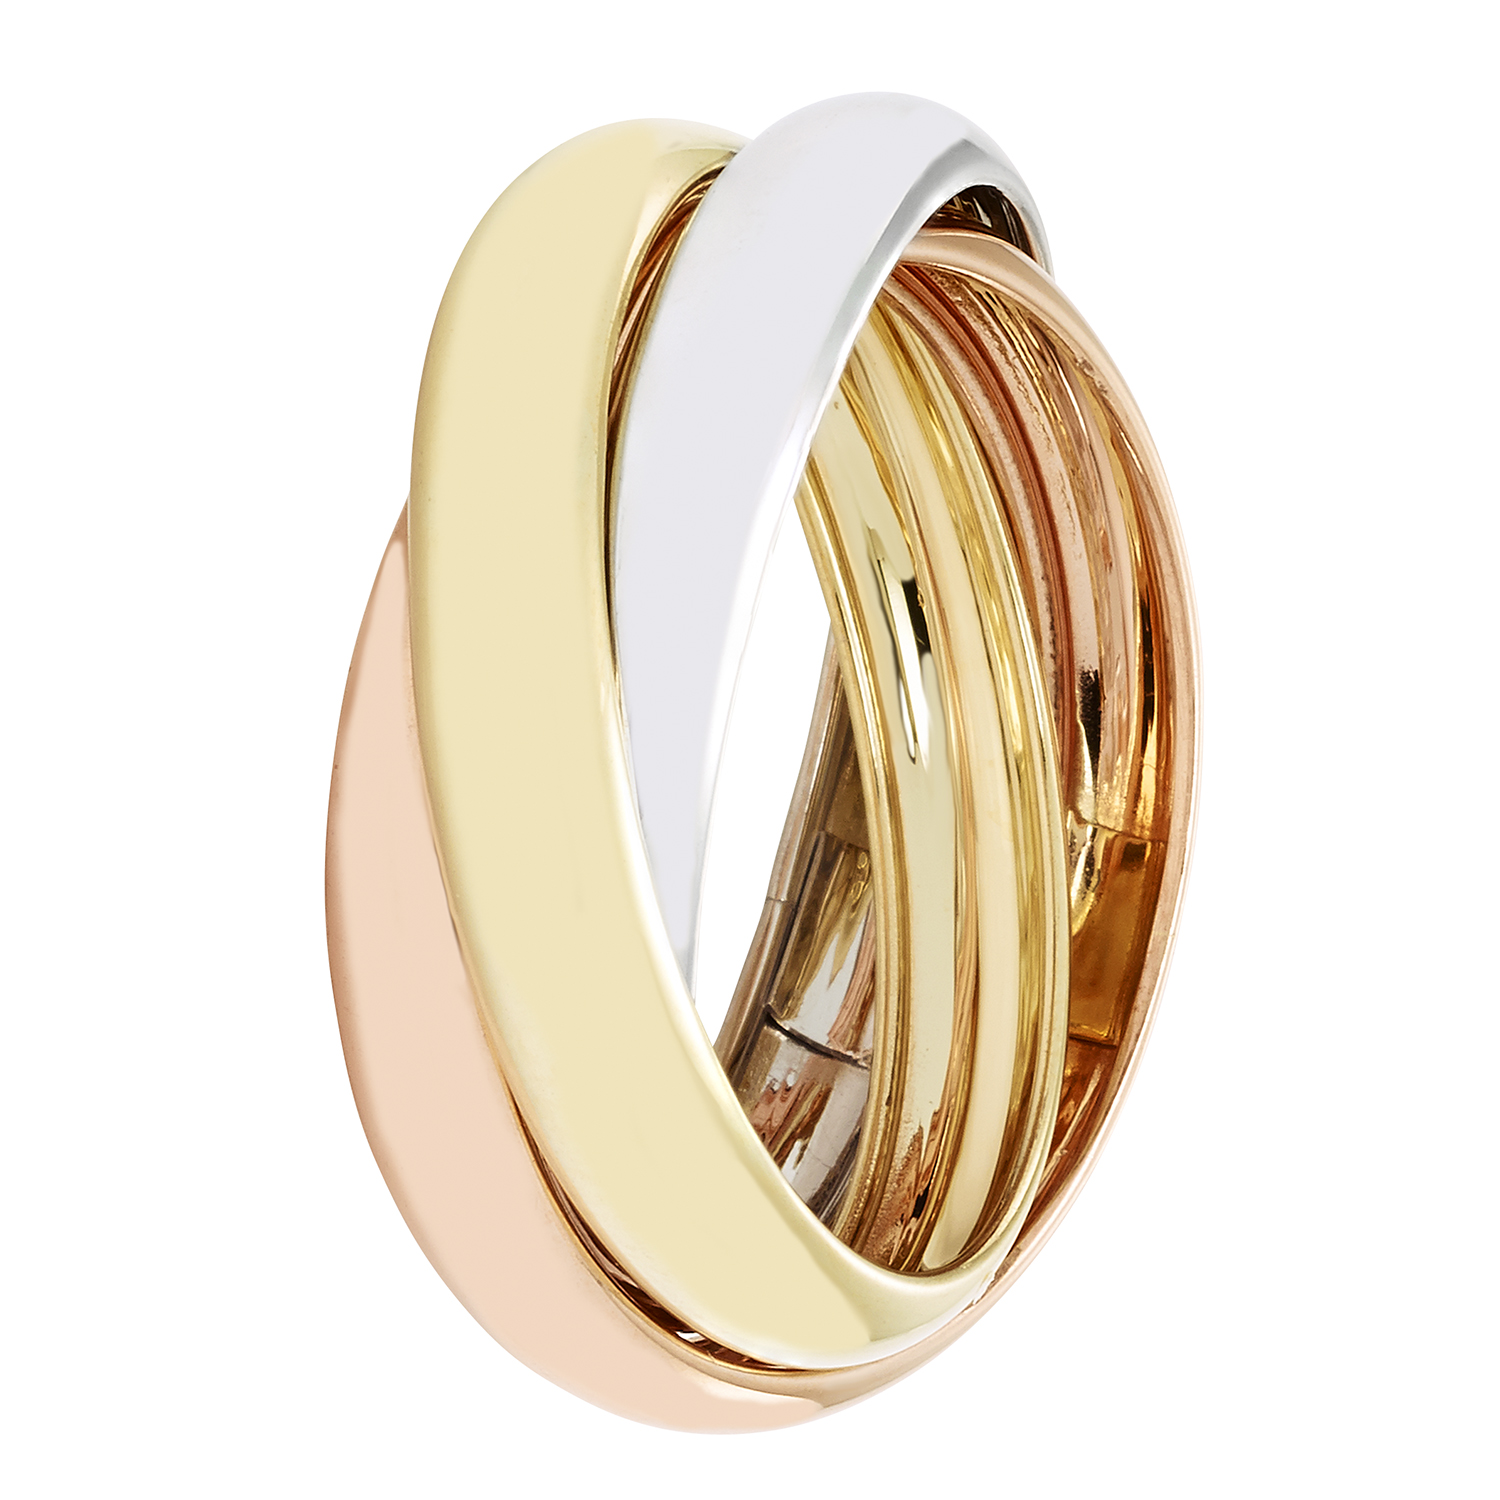 10k Combined 12mm Width Tri Color Rolling Ring - Size 8